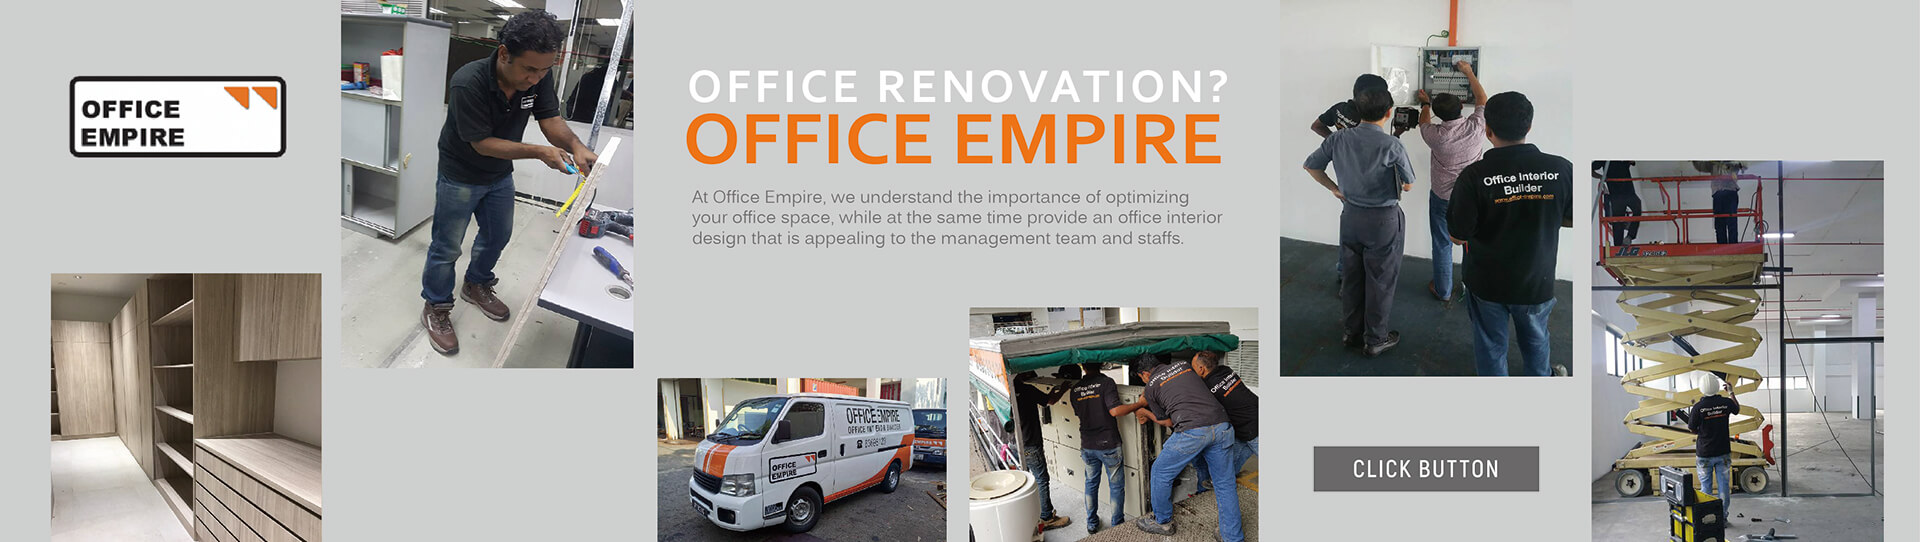 Office Renovation Singapore Banner